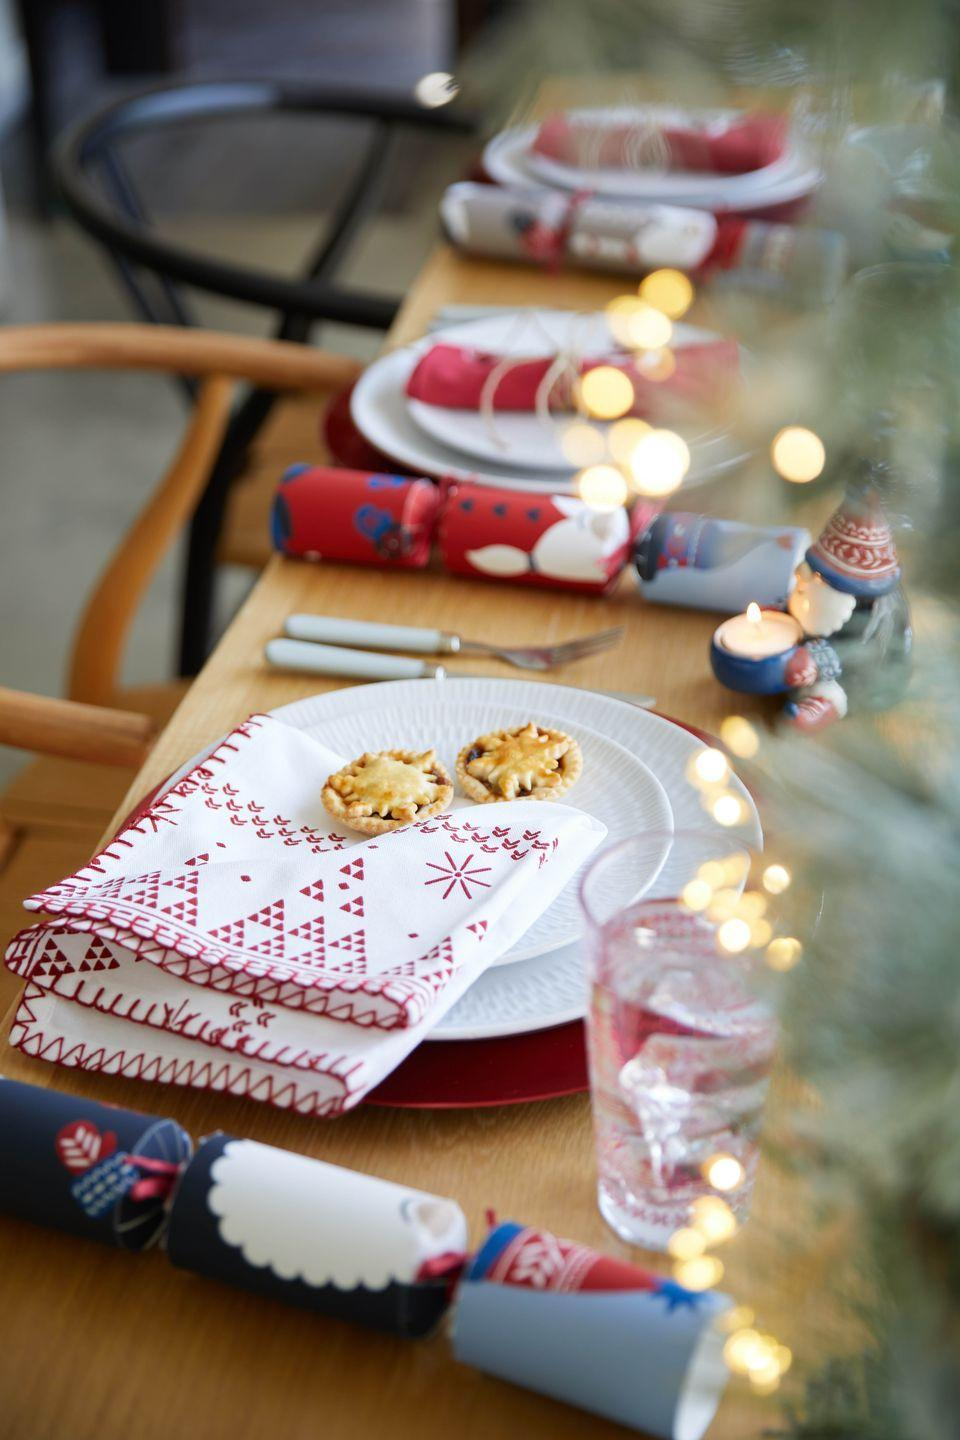 <p>Transform your Christmas table with new napkins, plastic-free crackers and fairy lights for decoration. Dunelm's Christmas range has everything you need to add sparkle to your evening meal. Tumblers start from just £1, while you can pick up plates for £4.</p>